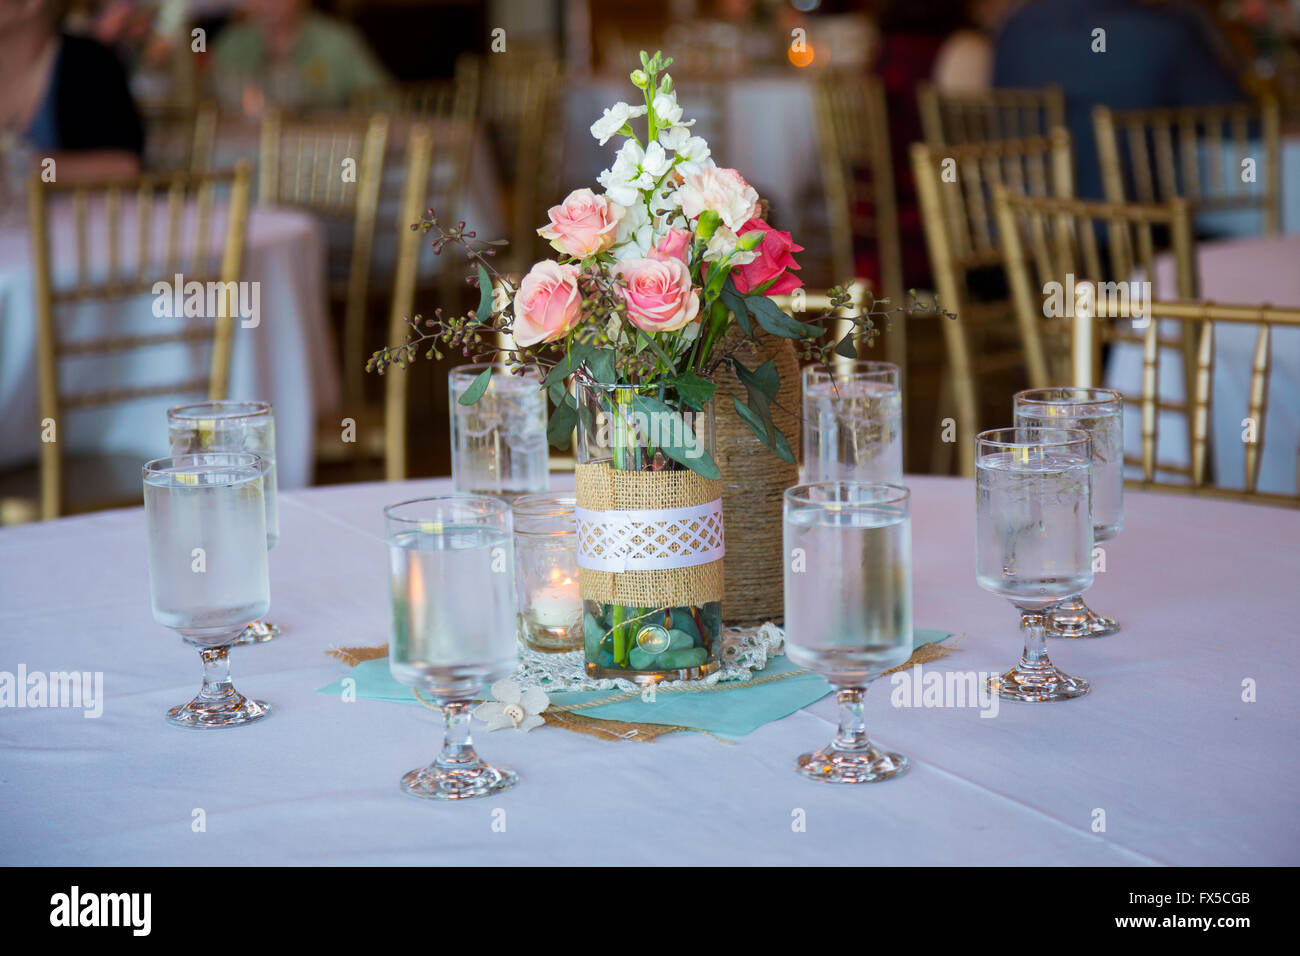 DIY wedding decor table centerpieces with wine bottles wrapped in ...